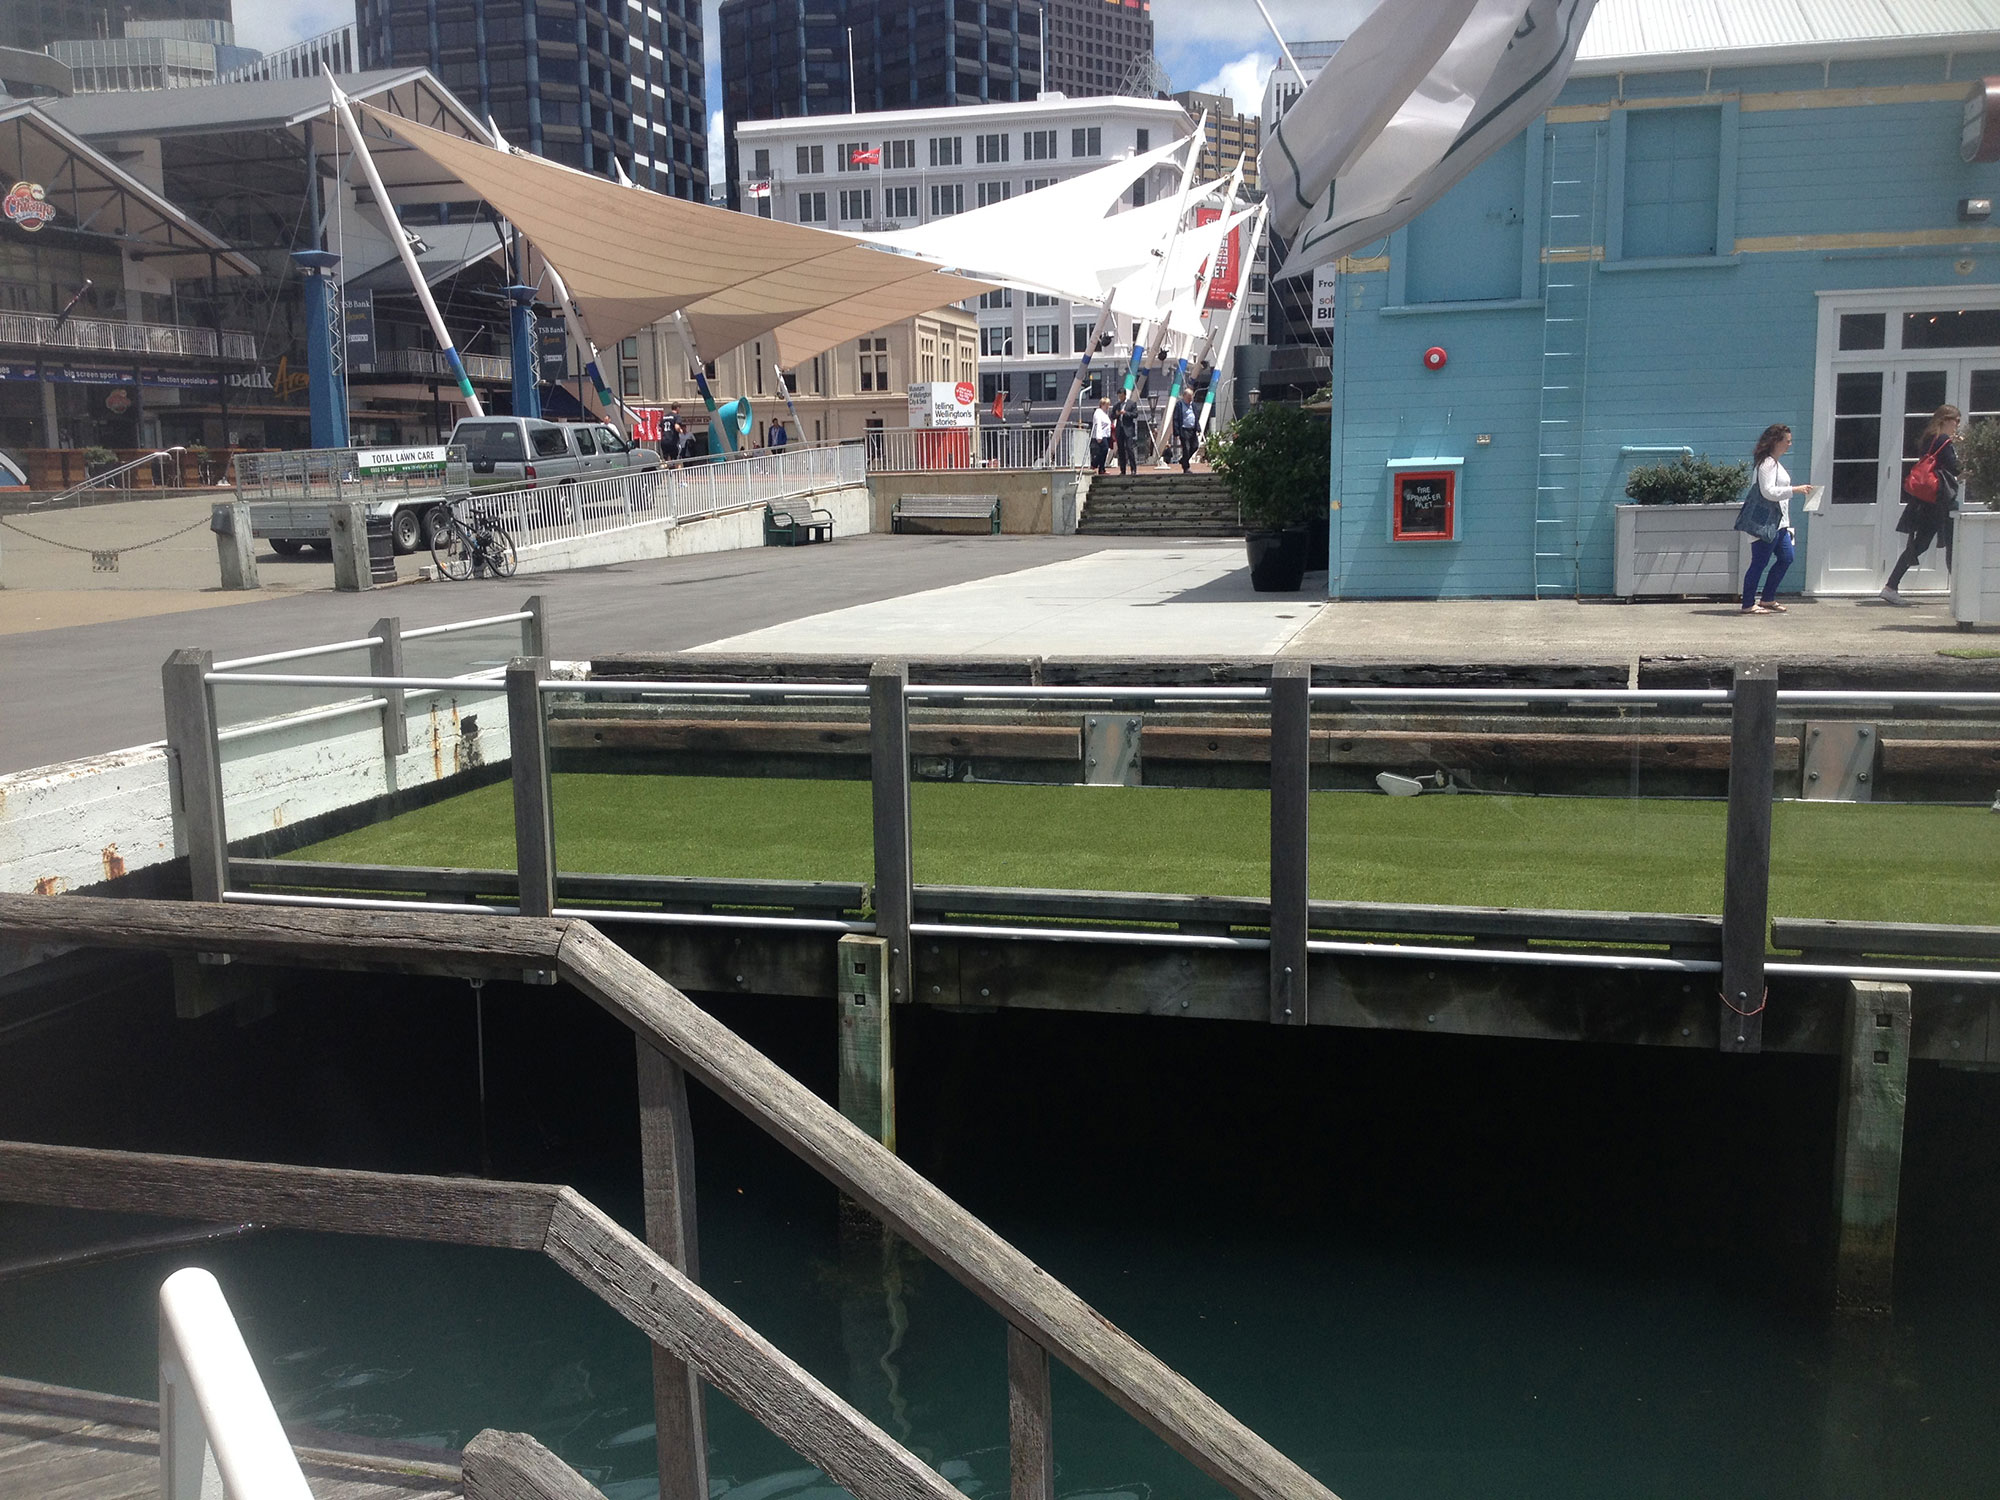 artificial grass at bars, cafes